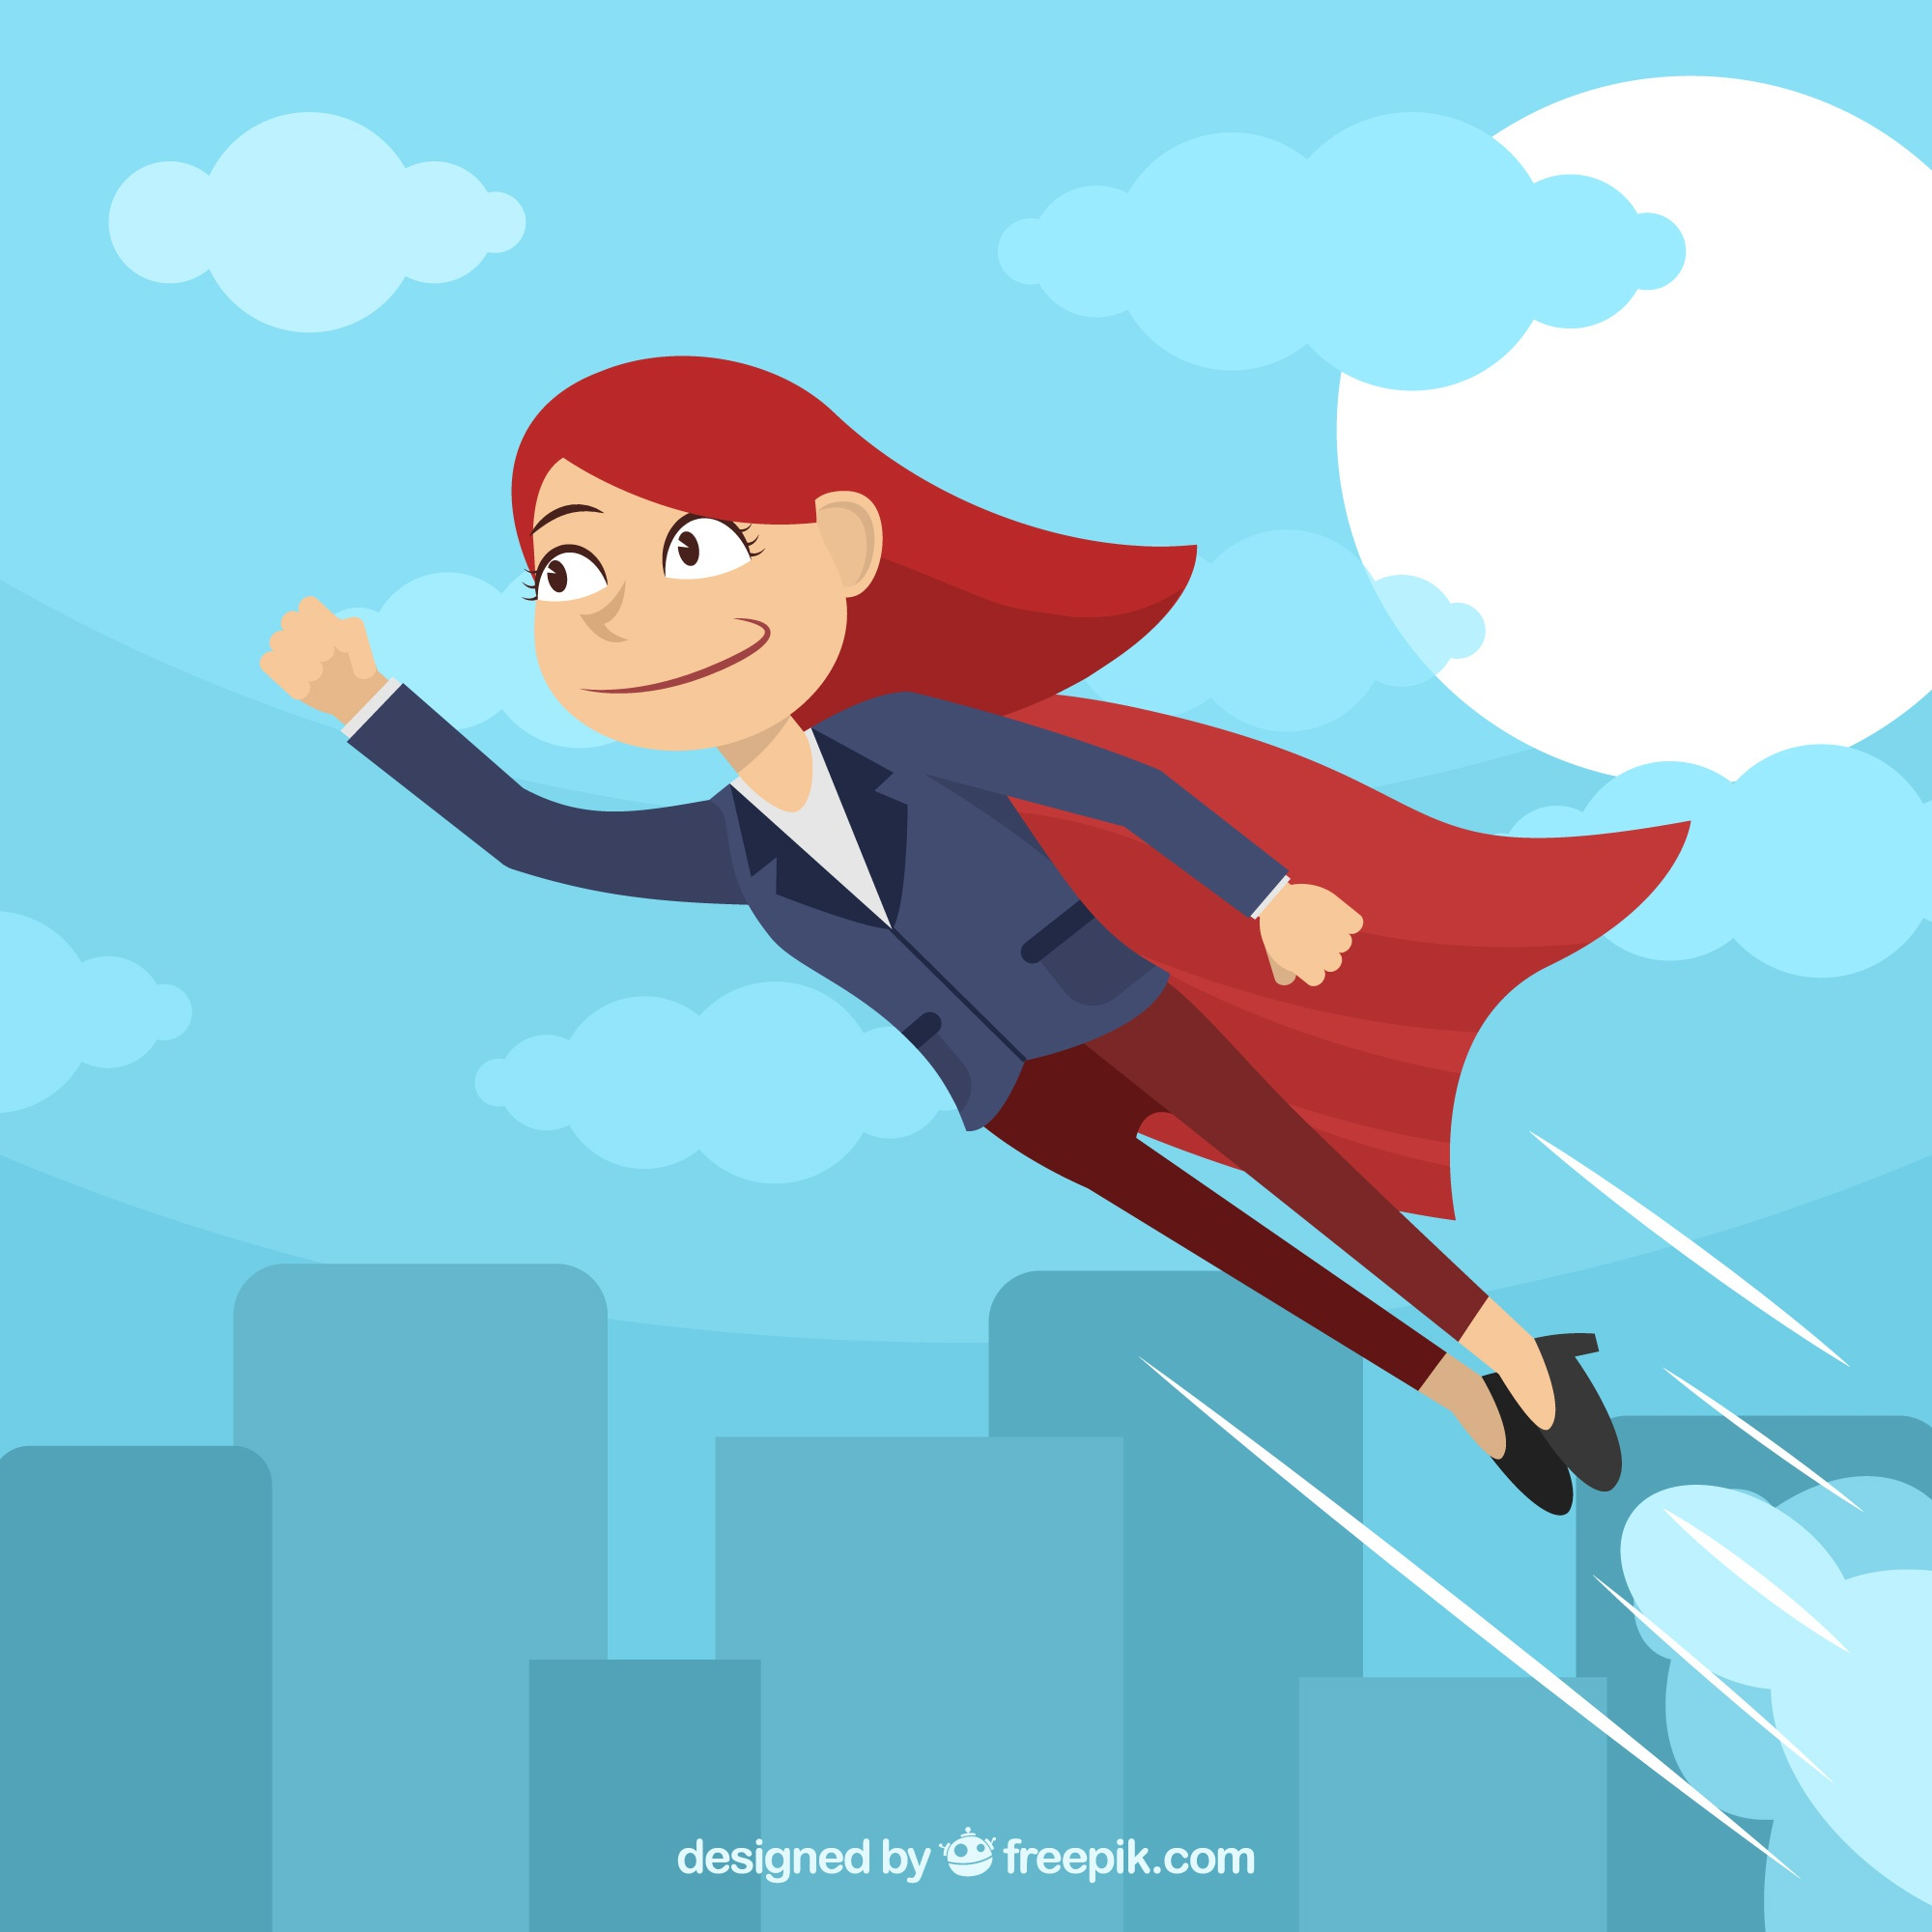 Background of business woman with layer of superhero